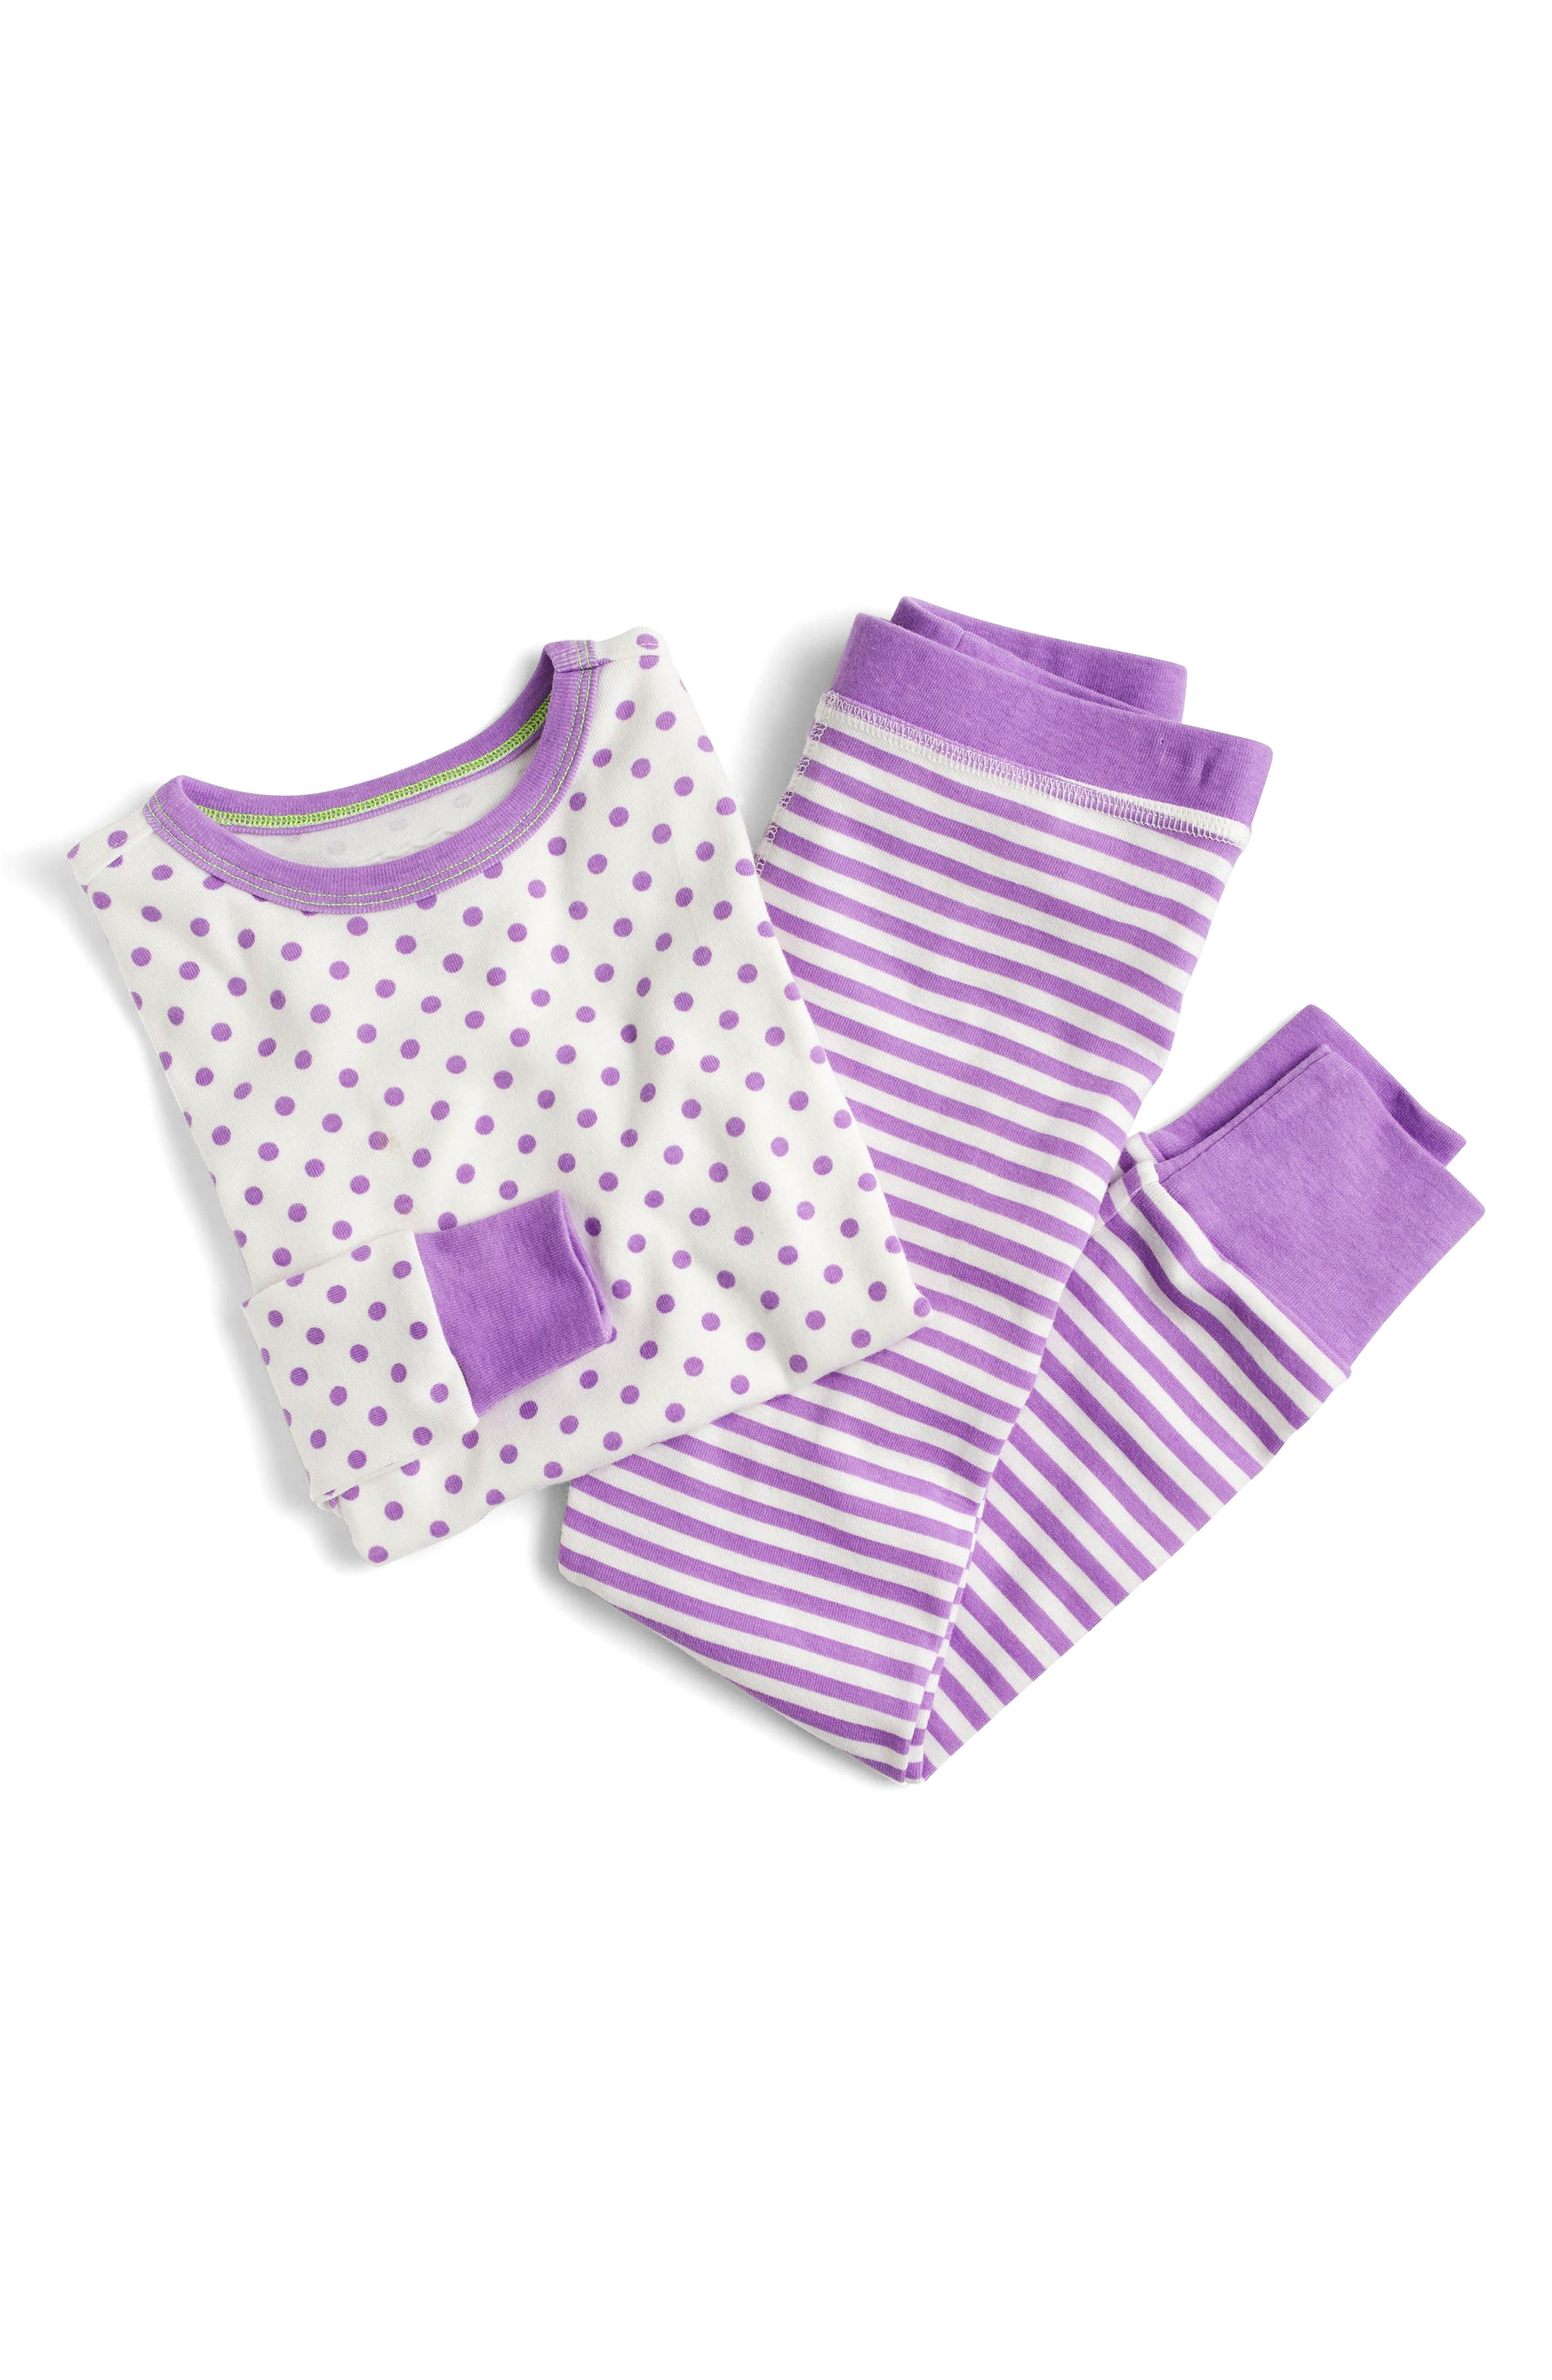 Alternate Image 1 Selected - crewcuts by J.Crew Dot & Stripe Fitted Two-Piece Pajamas (Toddler Girls, Little Girls & Big Girls)